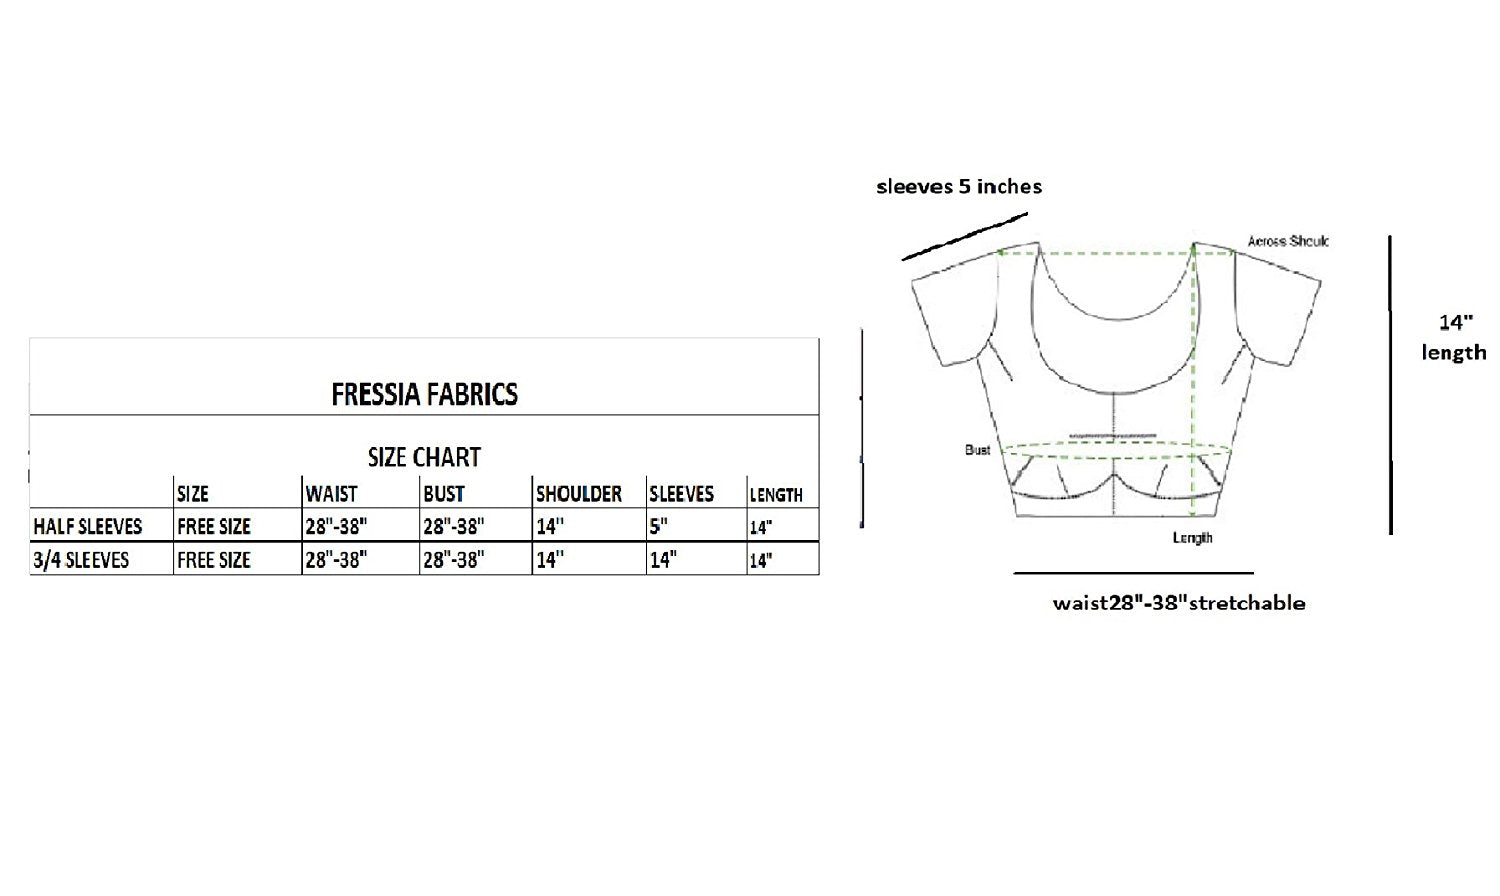 6997c7d21687a Fressia Fabrics Readymade free Size saree blouse for women party wear – JKK  Mart